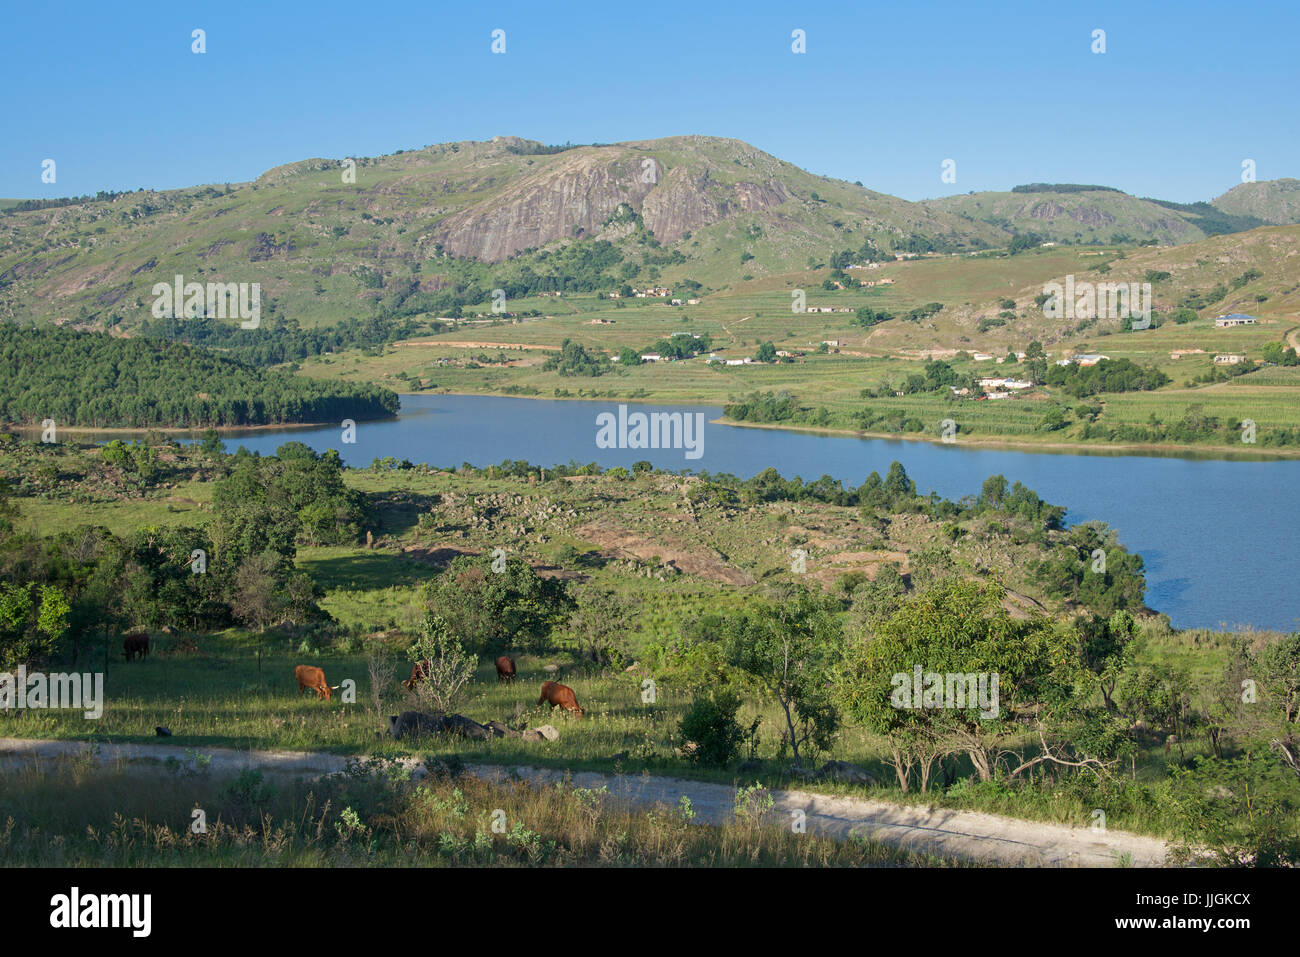 Landscape with Luphohle Lake Central Swaziland Southern Africa - Stock Image